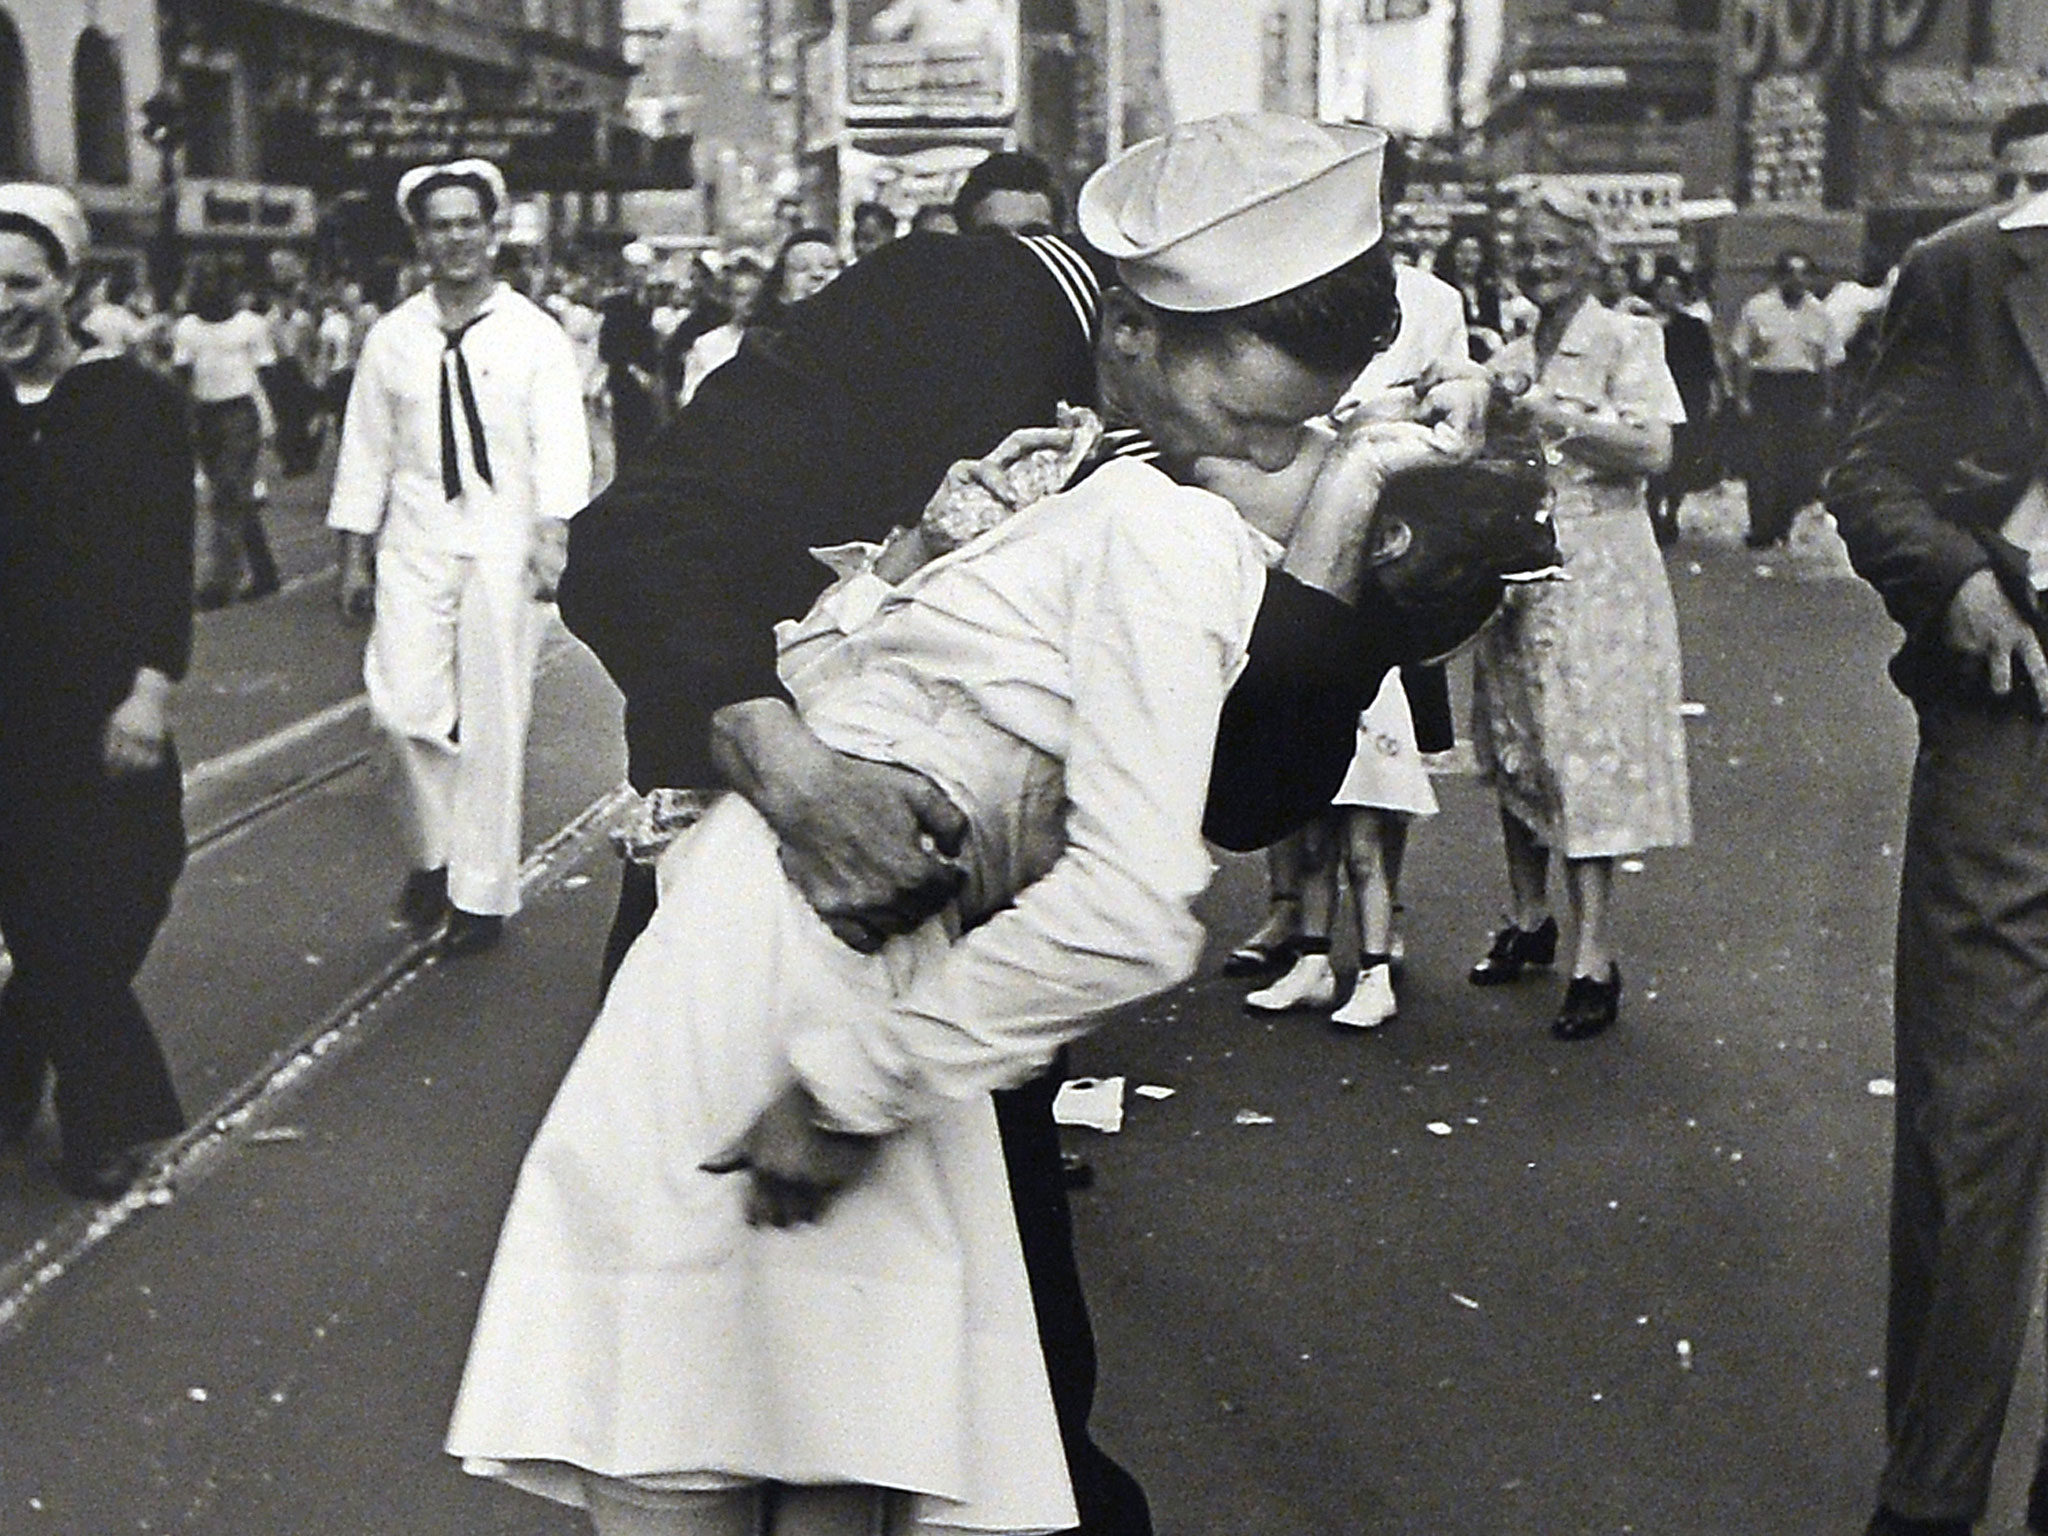 Greta_Friedman_photo greta friedman Greta Friedman, the nurse from the iconic photo of WWII dies at 92 la me greta friedman 20160910 snap